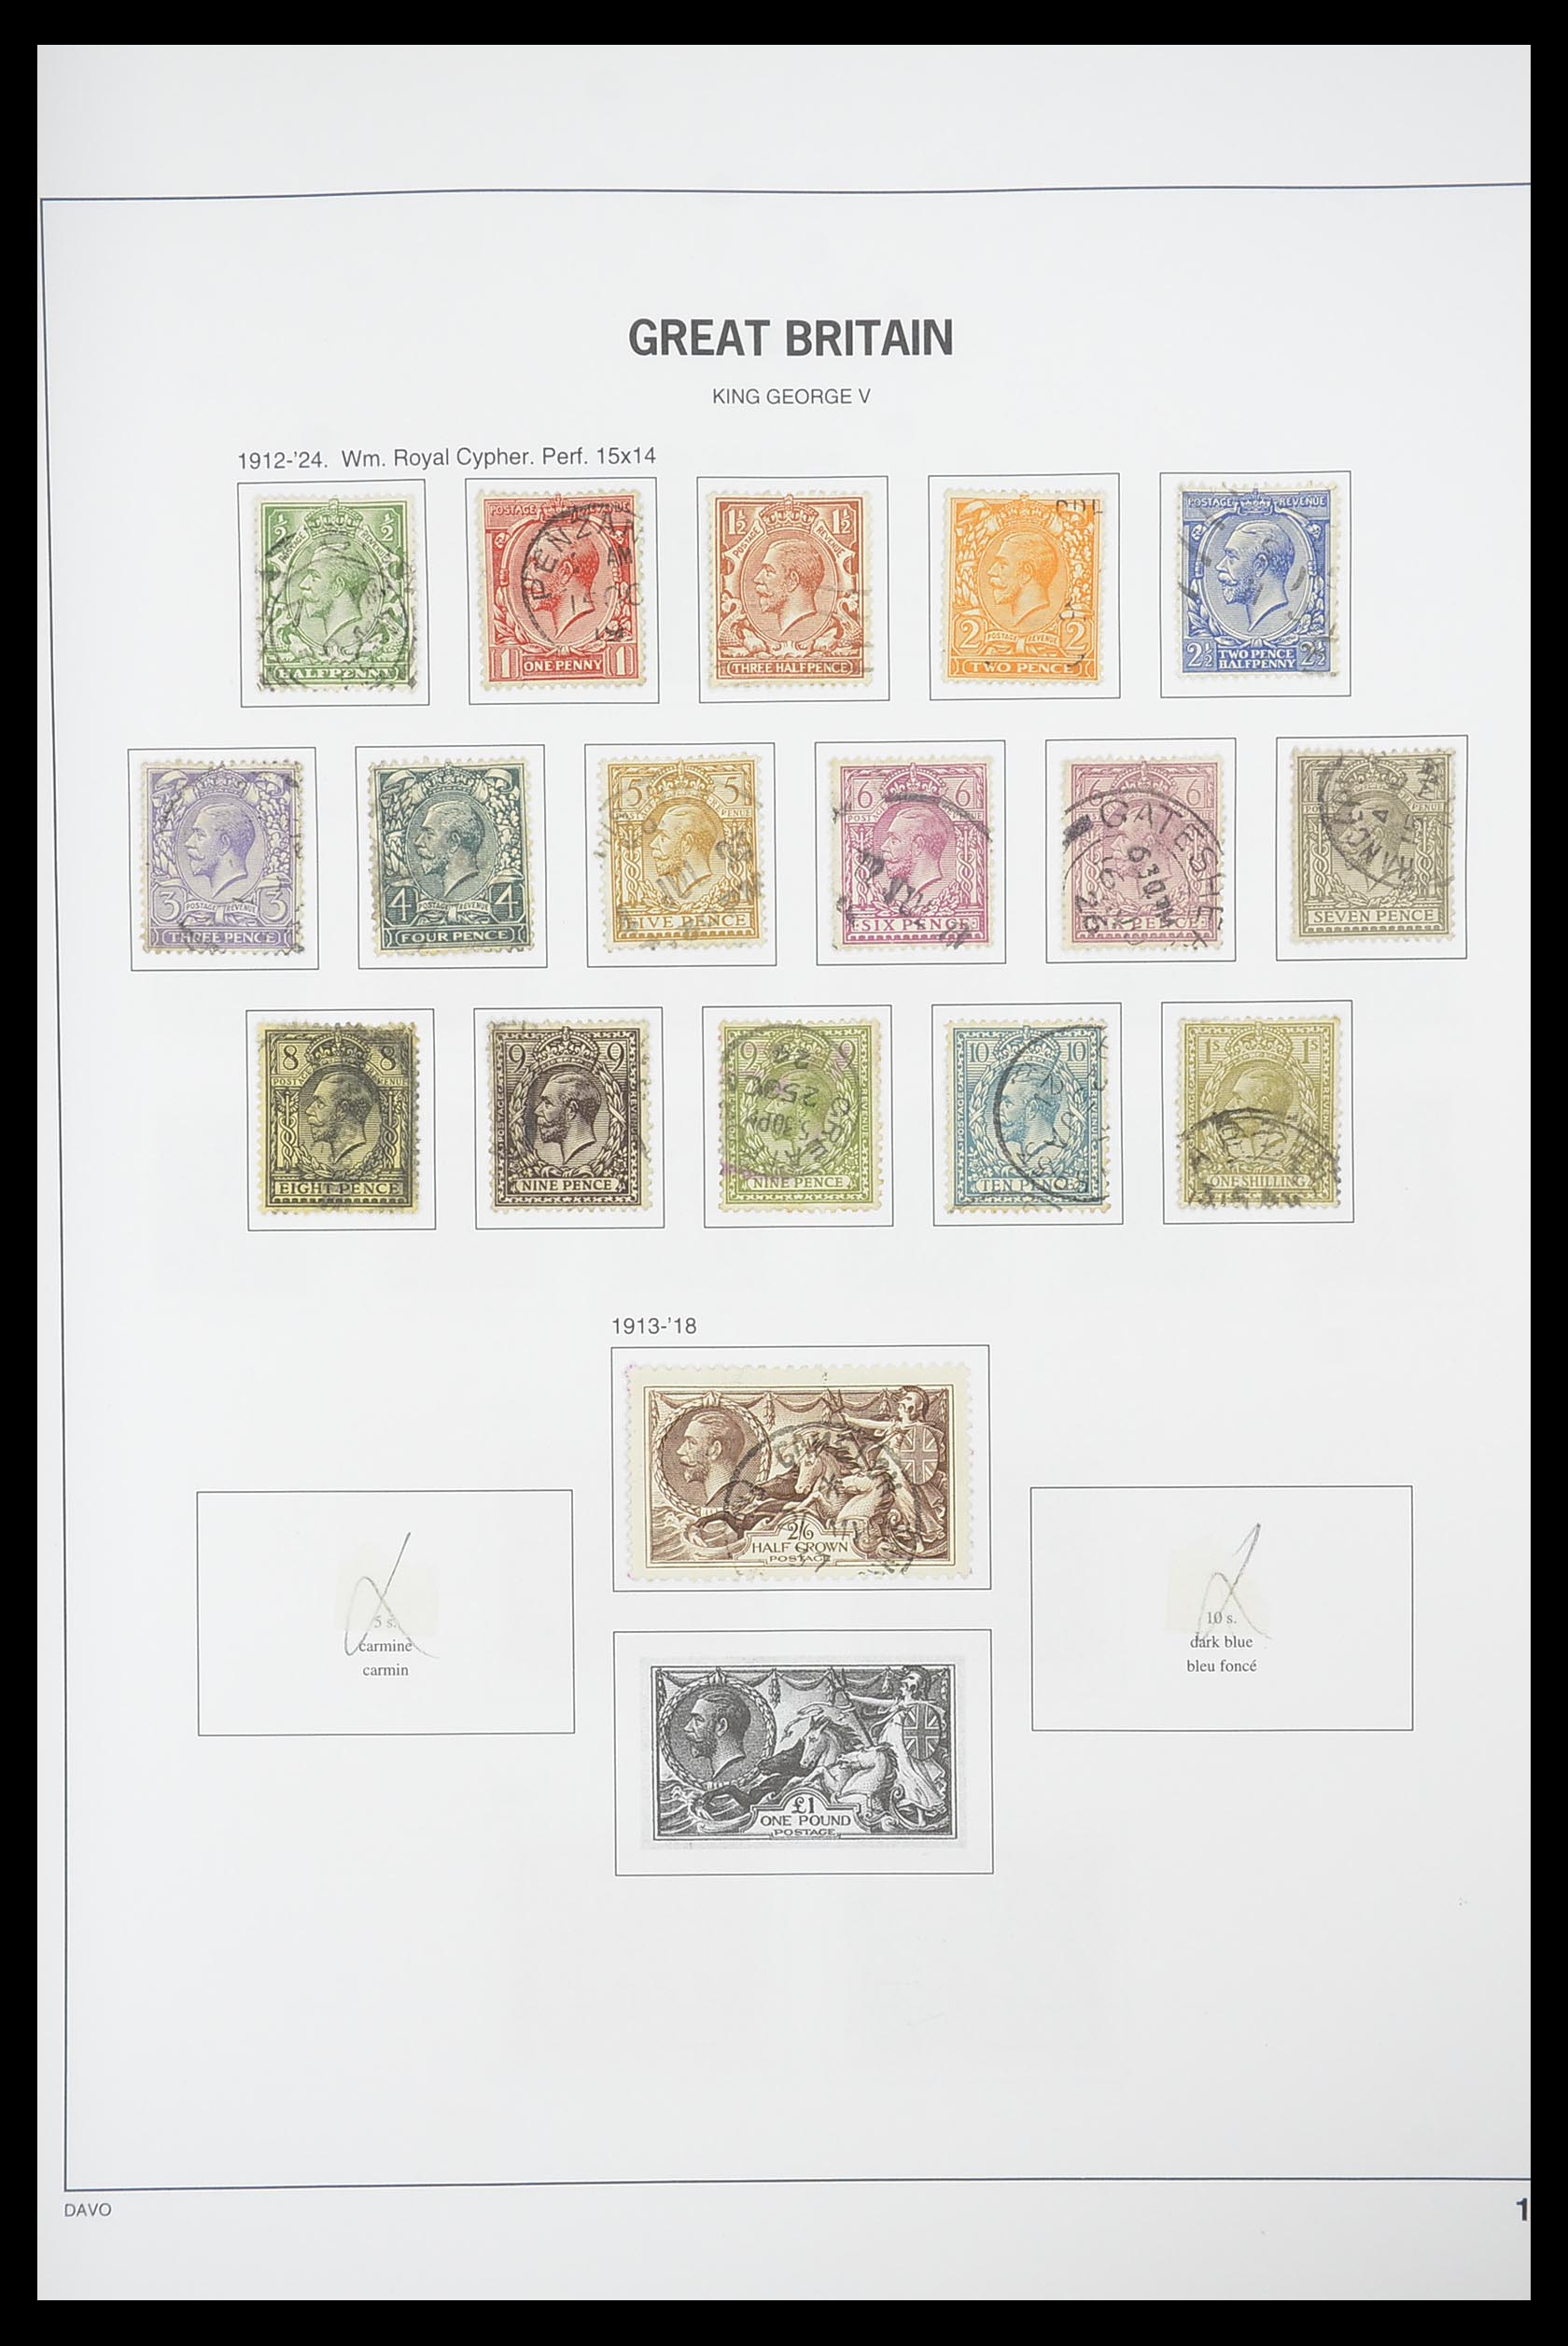 33898 009 - Stamp collection 33898 Great Britain 1840-2006.